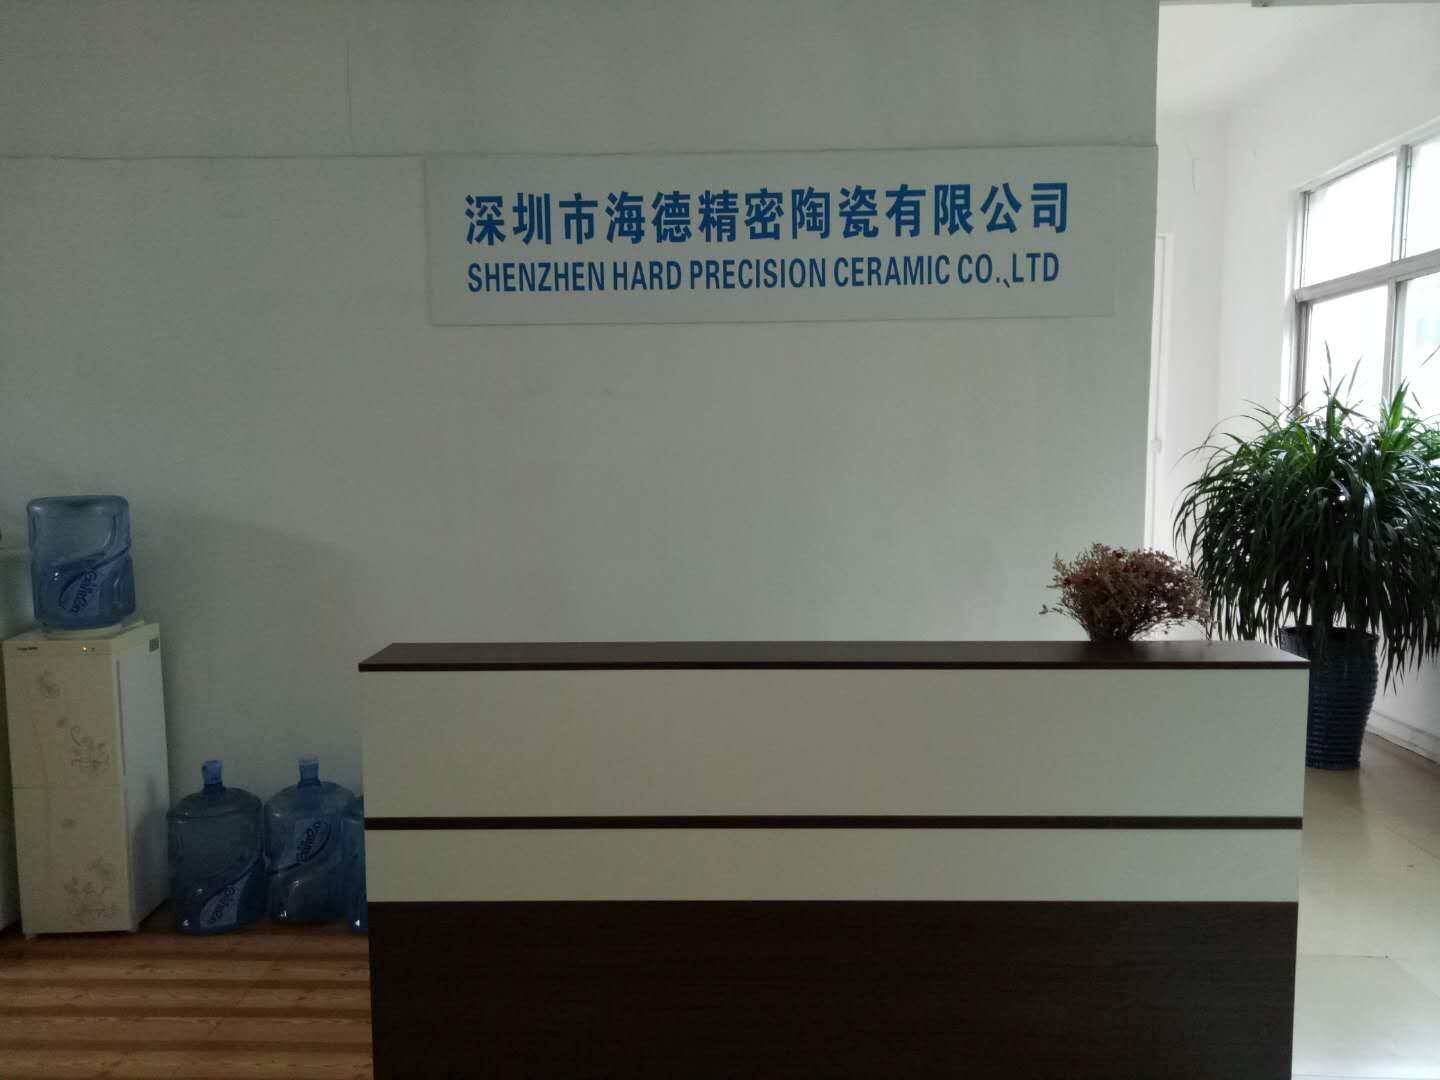 SHENZHEN HARD PRECISION CERAMIC CO.,LTD